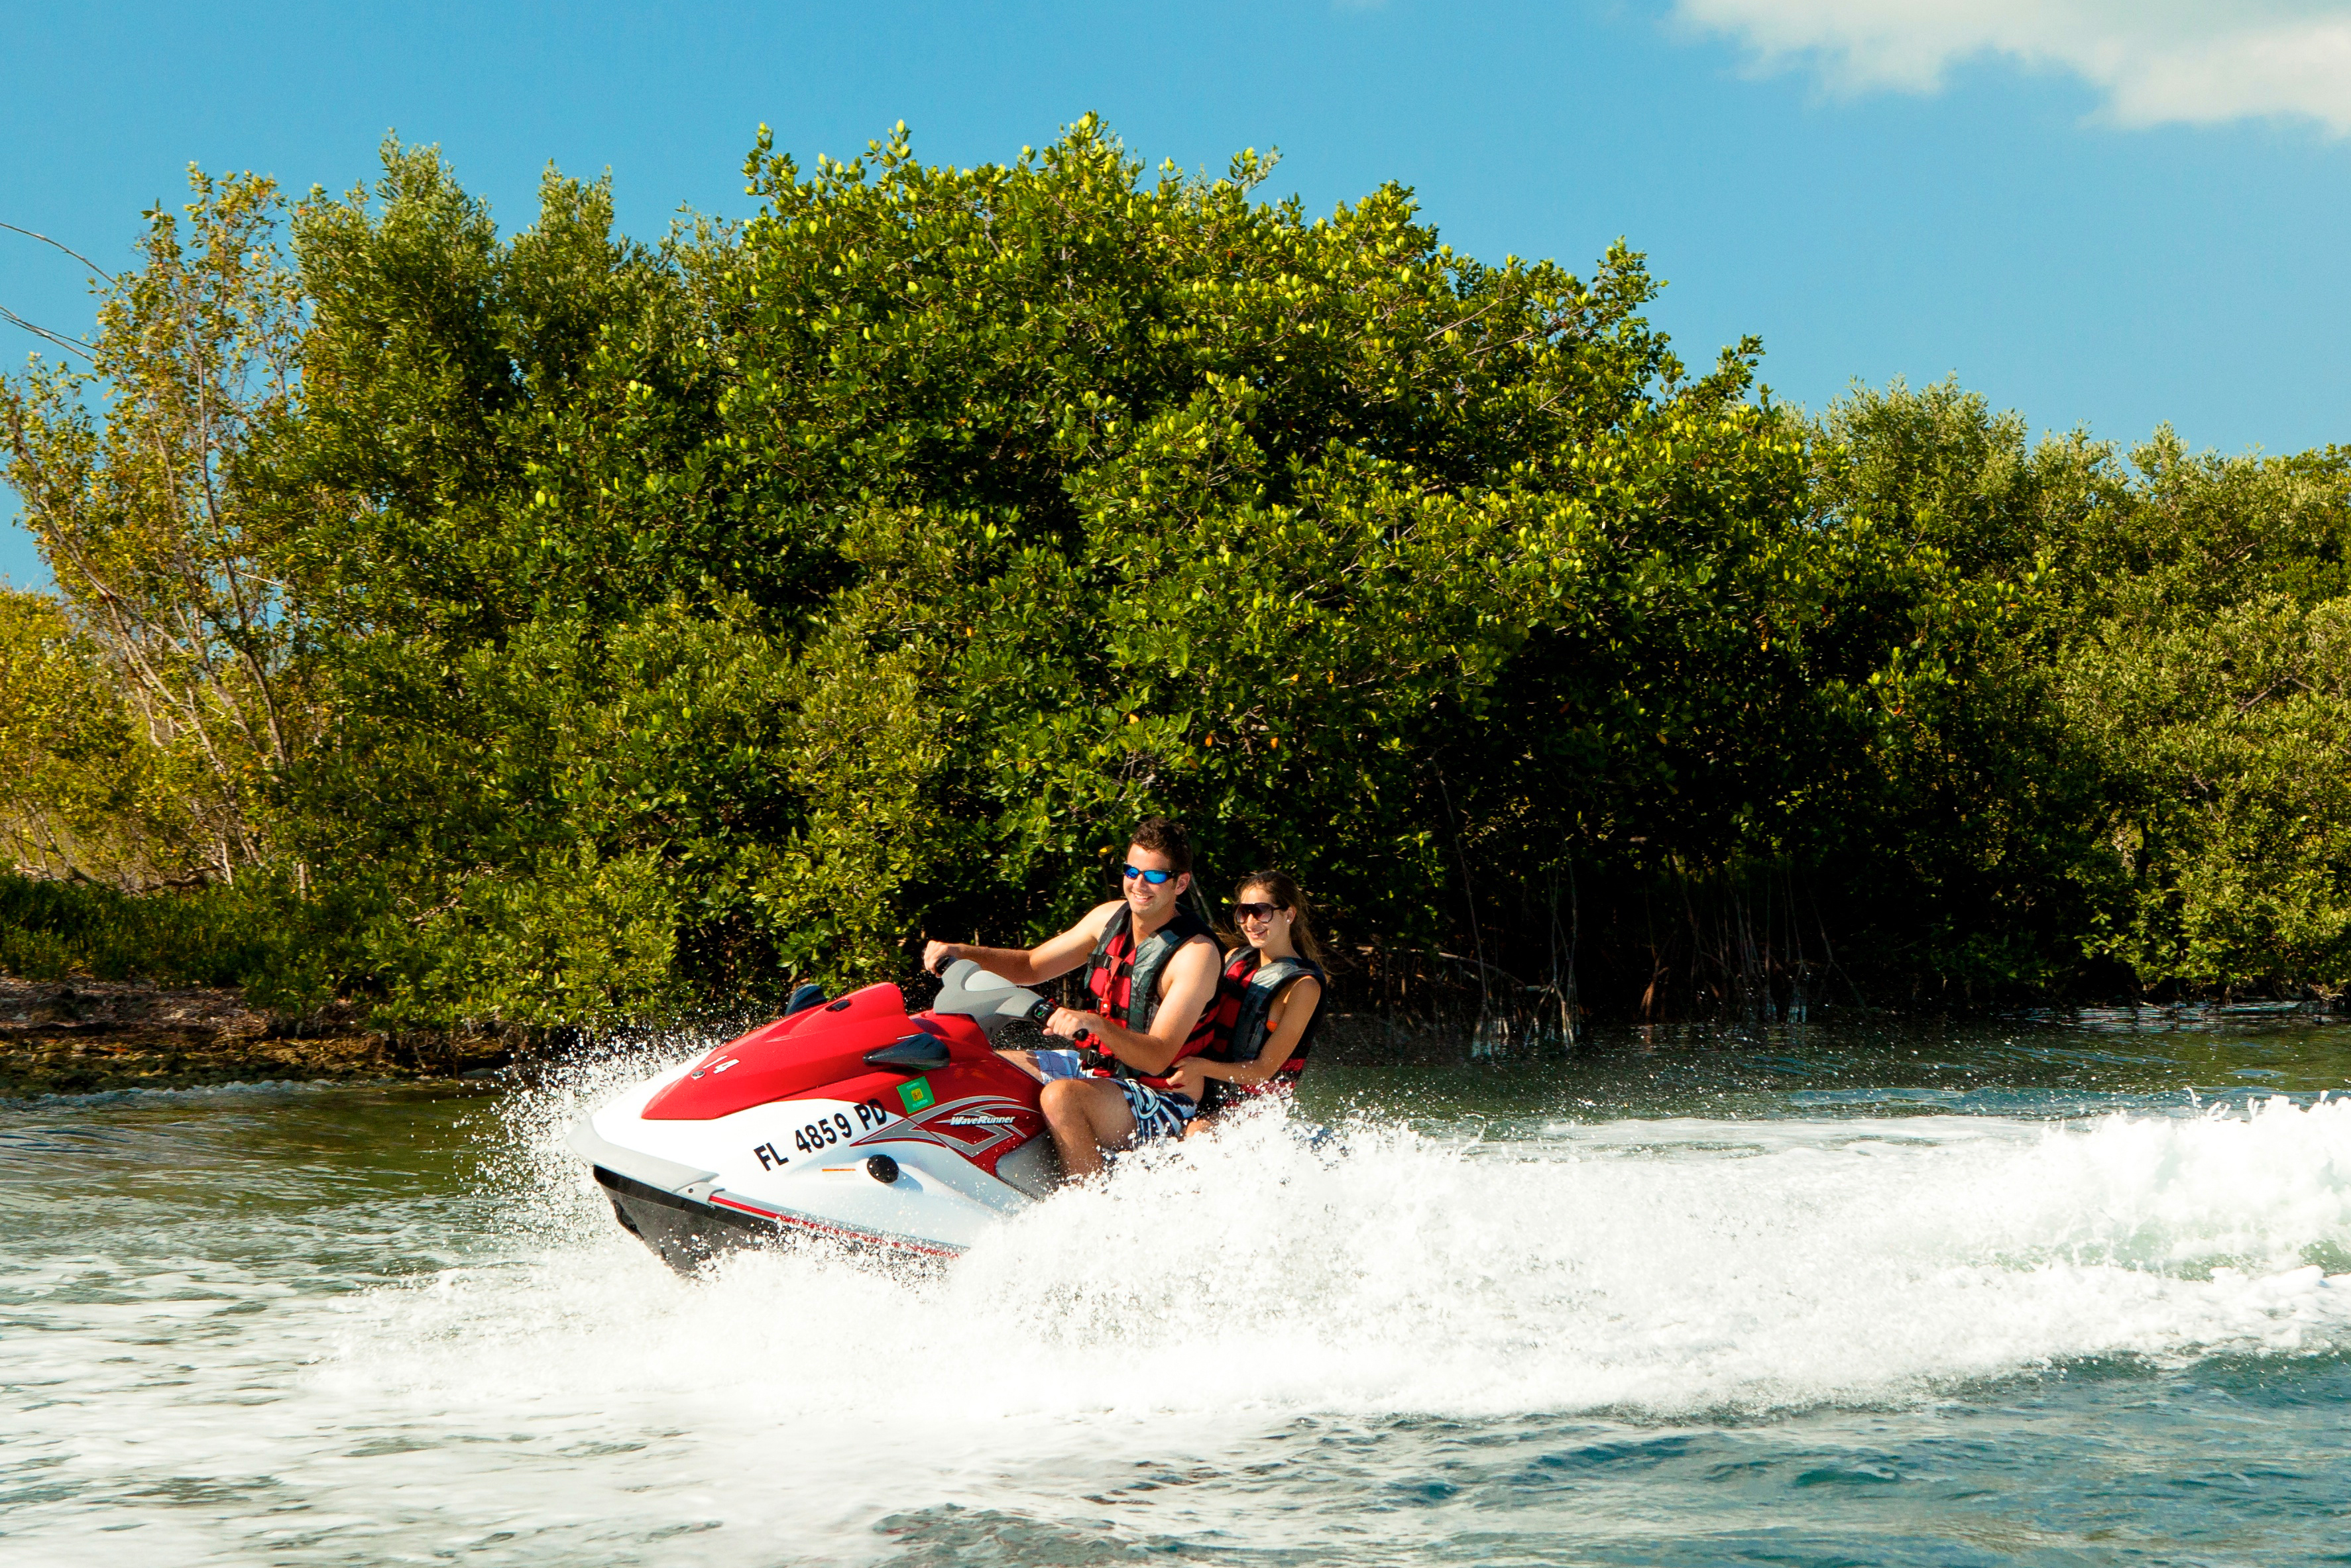 Fury Key West Jet Ski Trip